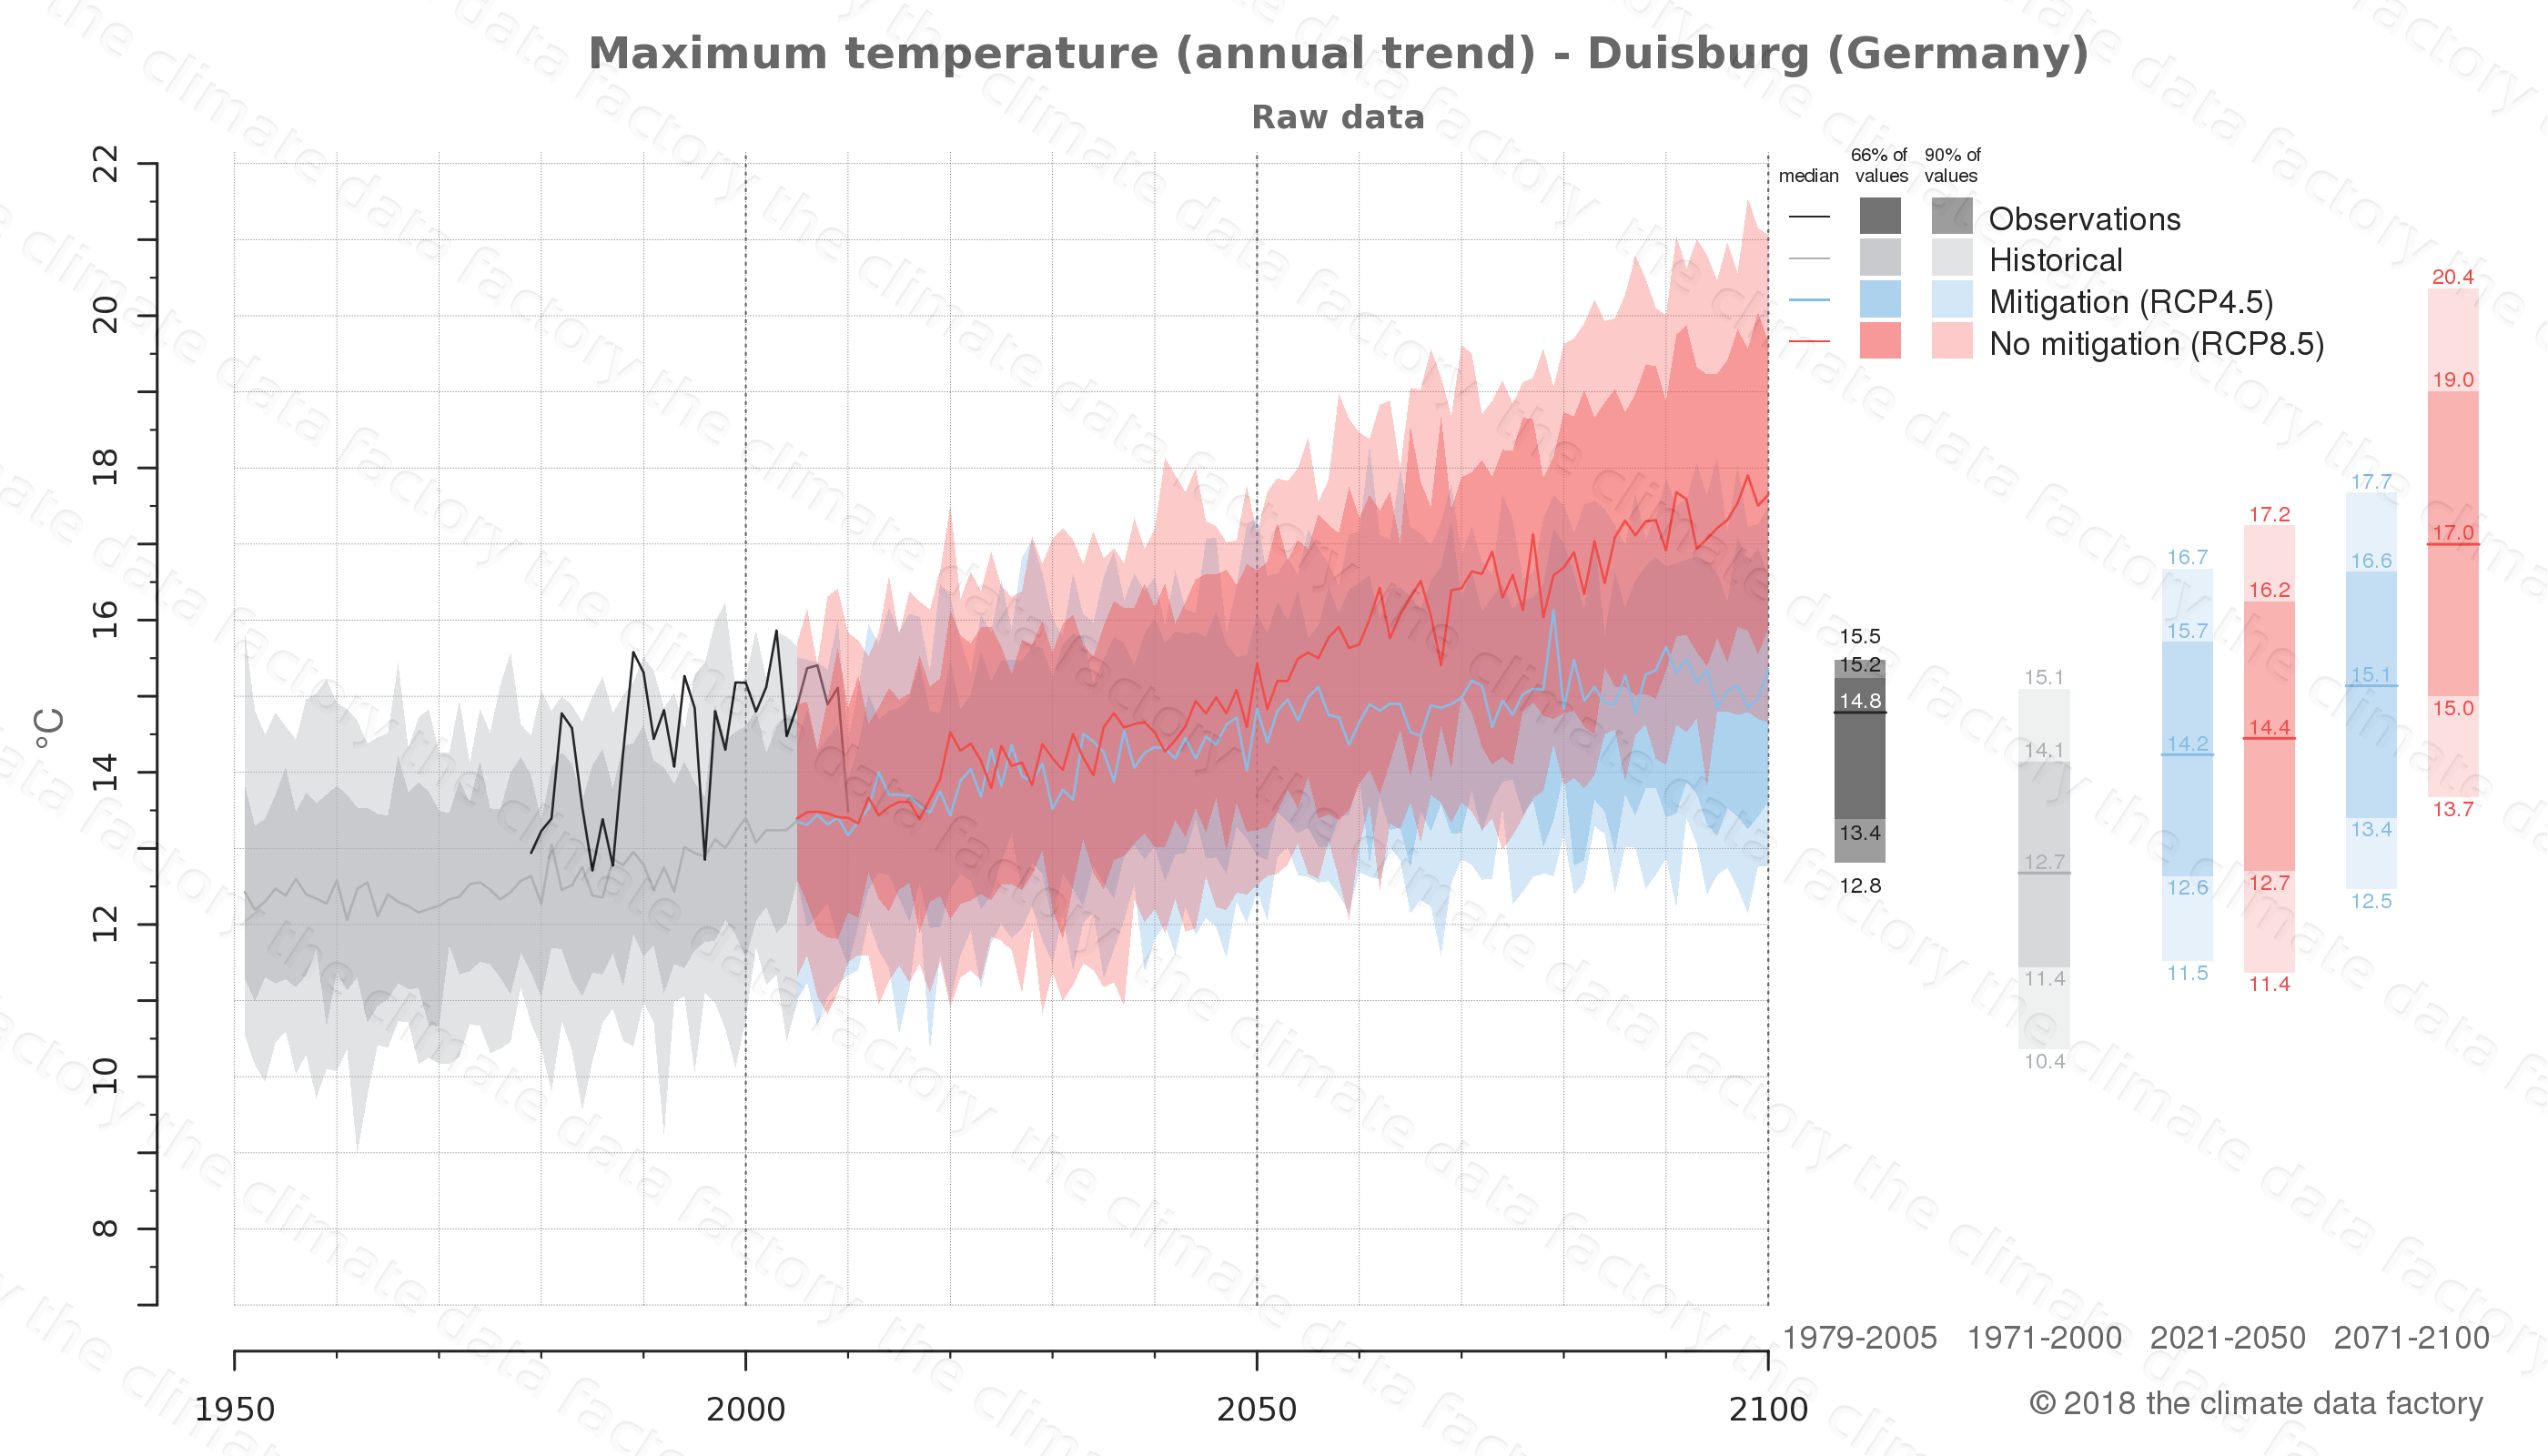 climate change data policy adaptation climate graph city data maximum-temperature duisburg germany